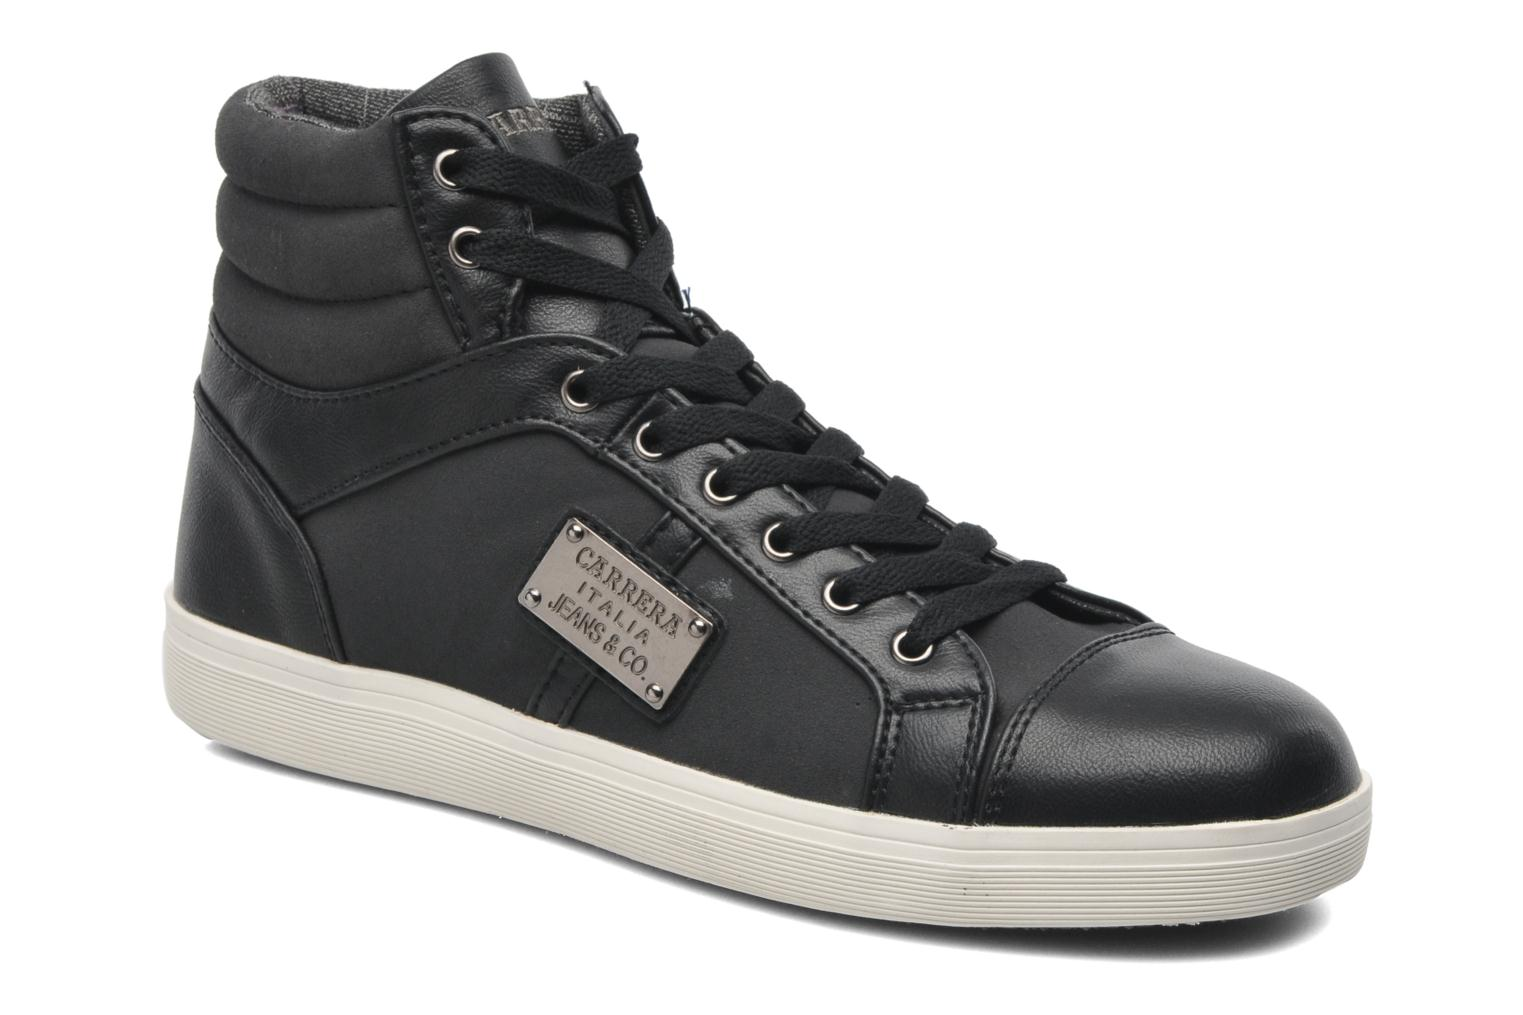 Sneakers Mid Firenze by Carrera